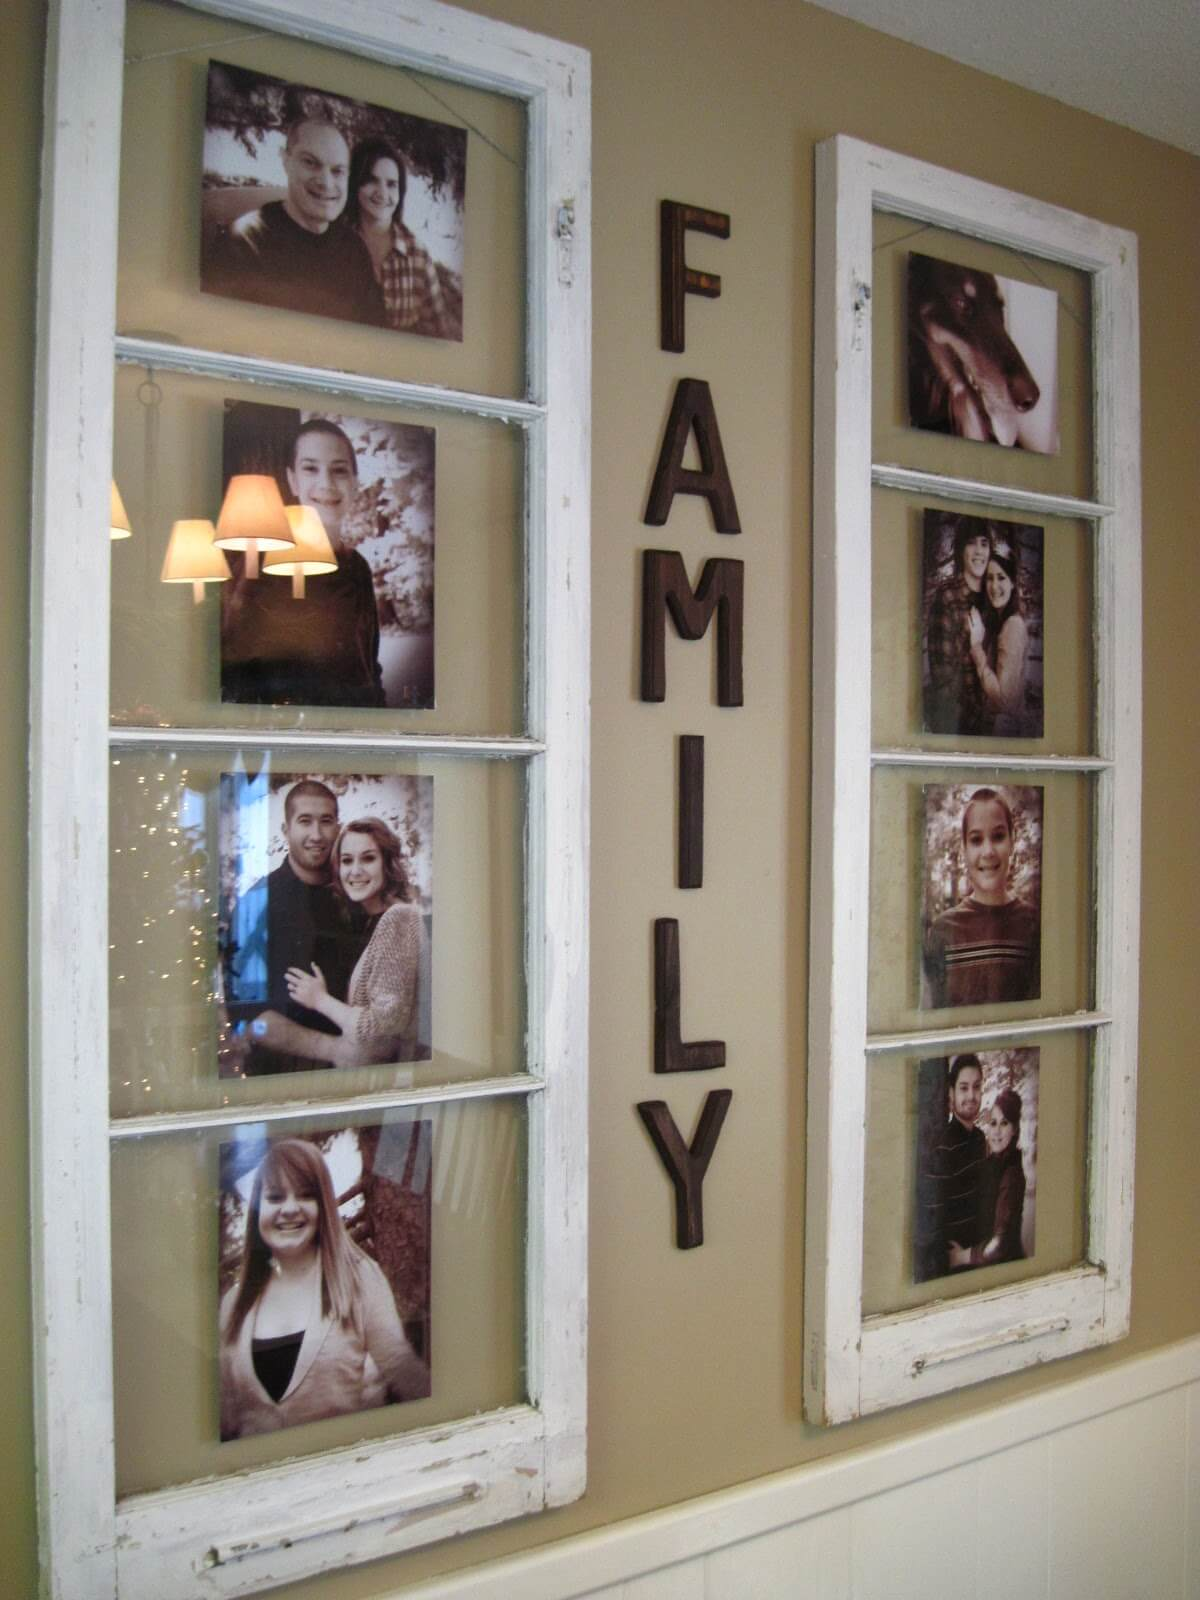 Chic Window To Home Repurposed Frames Diy Rustic Home Decor Ideas Designs 2018 Cheap Rustic Home Decor Ideas Rustic Home Decorating Ideas home decor Rustic Home Decorating Ideas